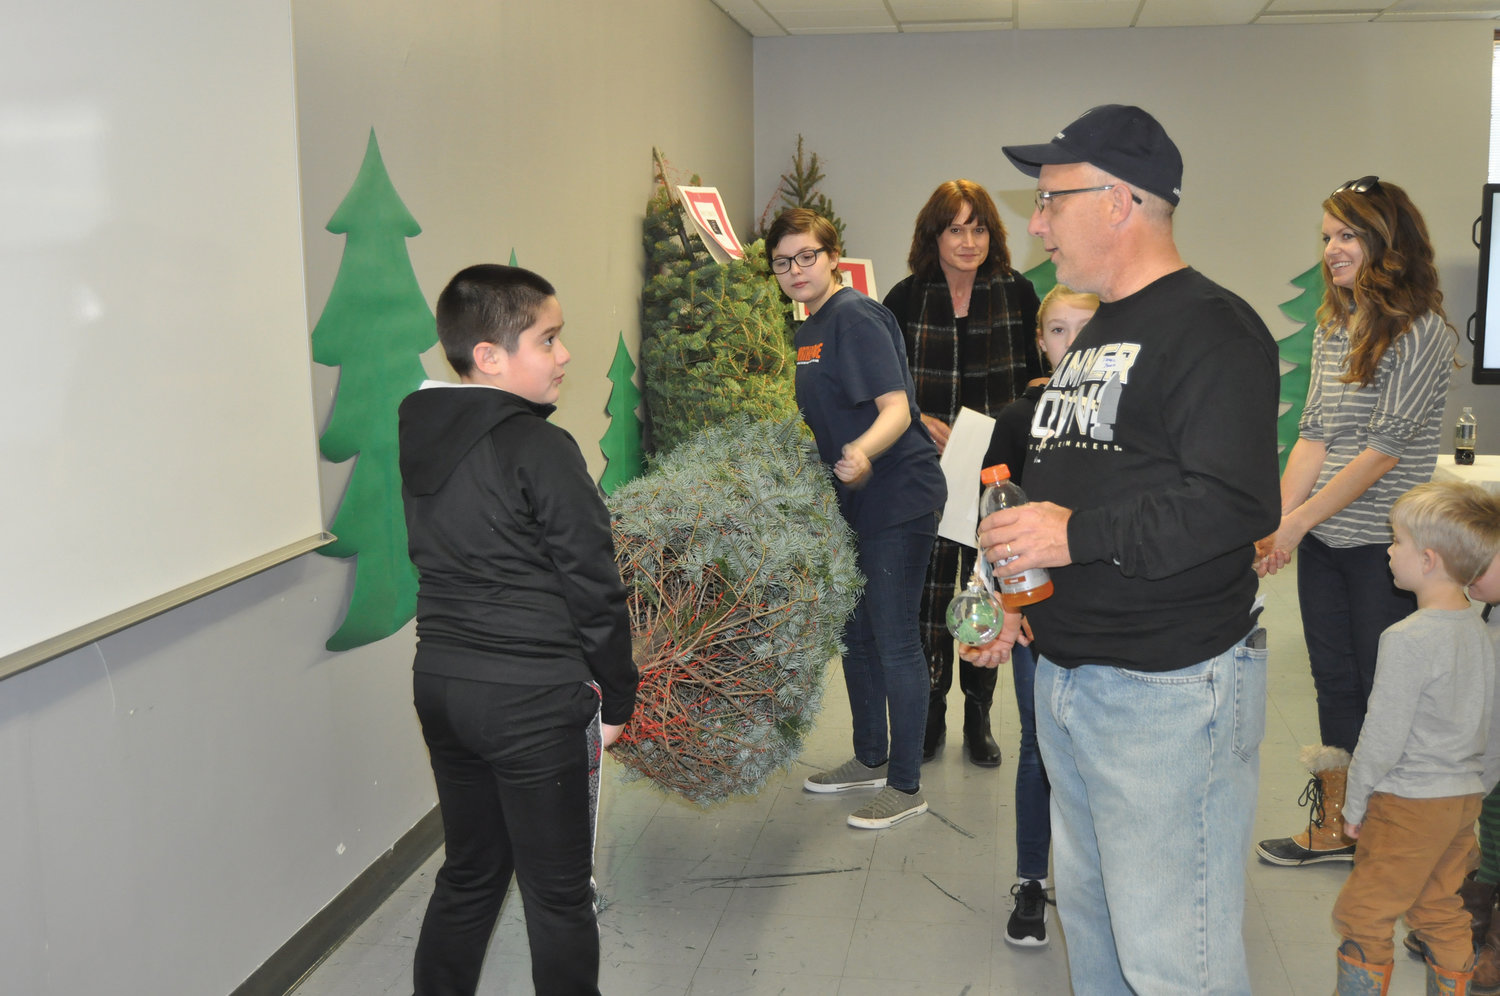 Northridge Middle School sixth grader Moises Berumen-Correa, left, speaks with veteran Darrell Borth as classmate Cambria Hall waits to carry a Christmas tree to Borth's car. The trees were donated to local servicemember families through the school's Project Evergreen. Also pictured are social studies teacher Jodi Webster and Oak Hill Tree Farm co-owner Rachel Stine, whose business grew the trees.